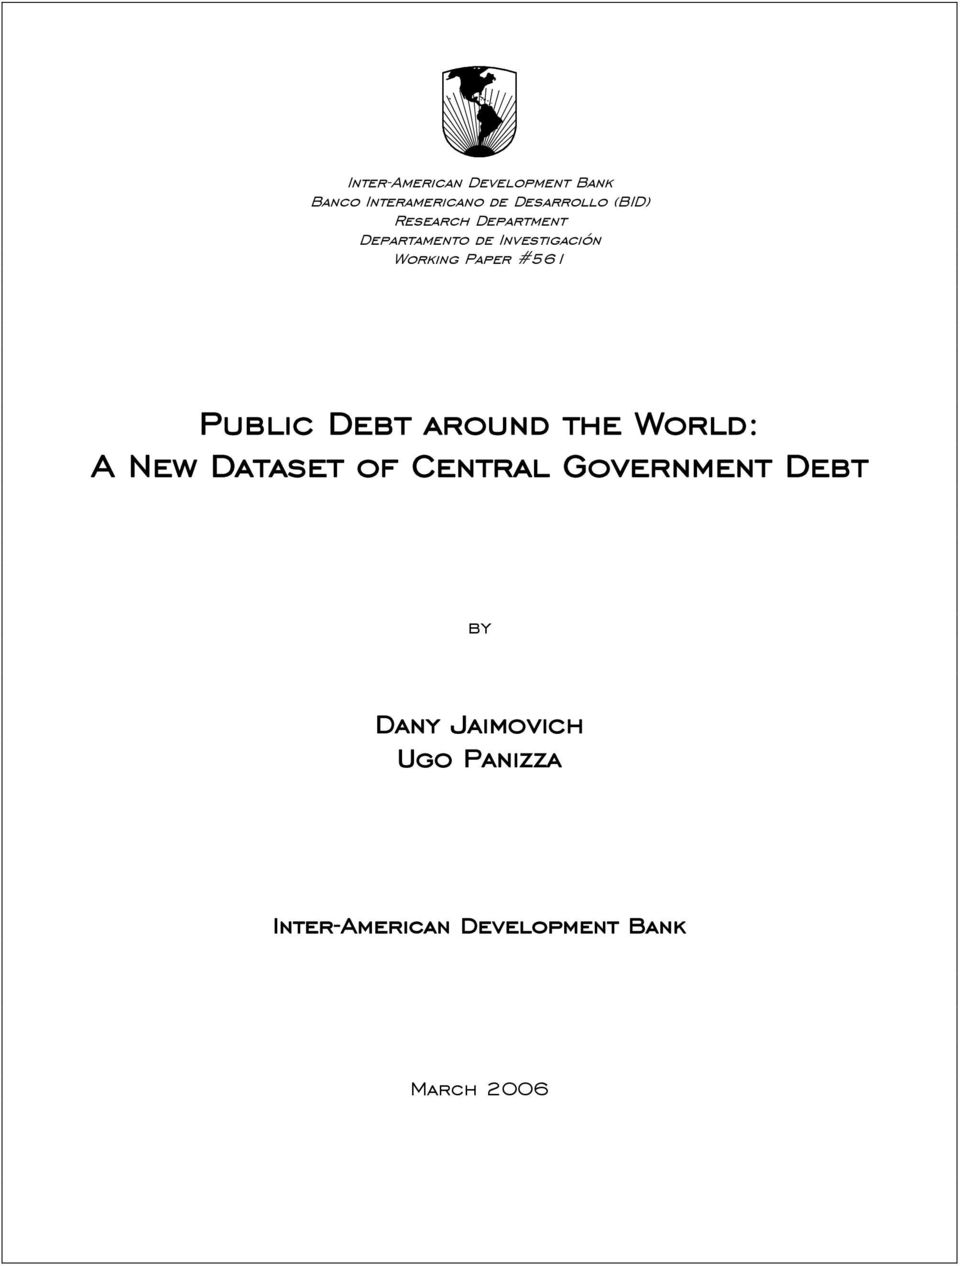 #561 Public Debt around the World: A New Dataset of Central Government